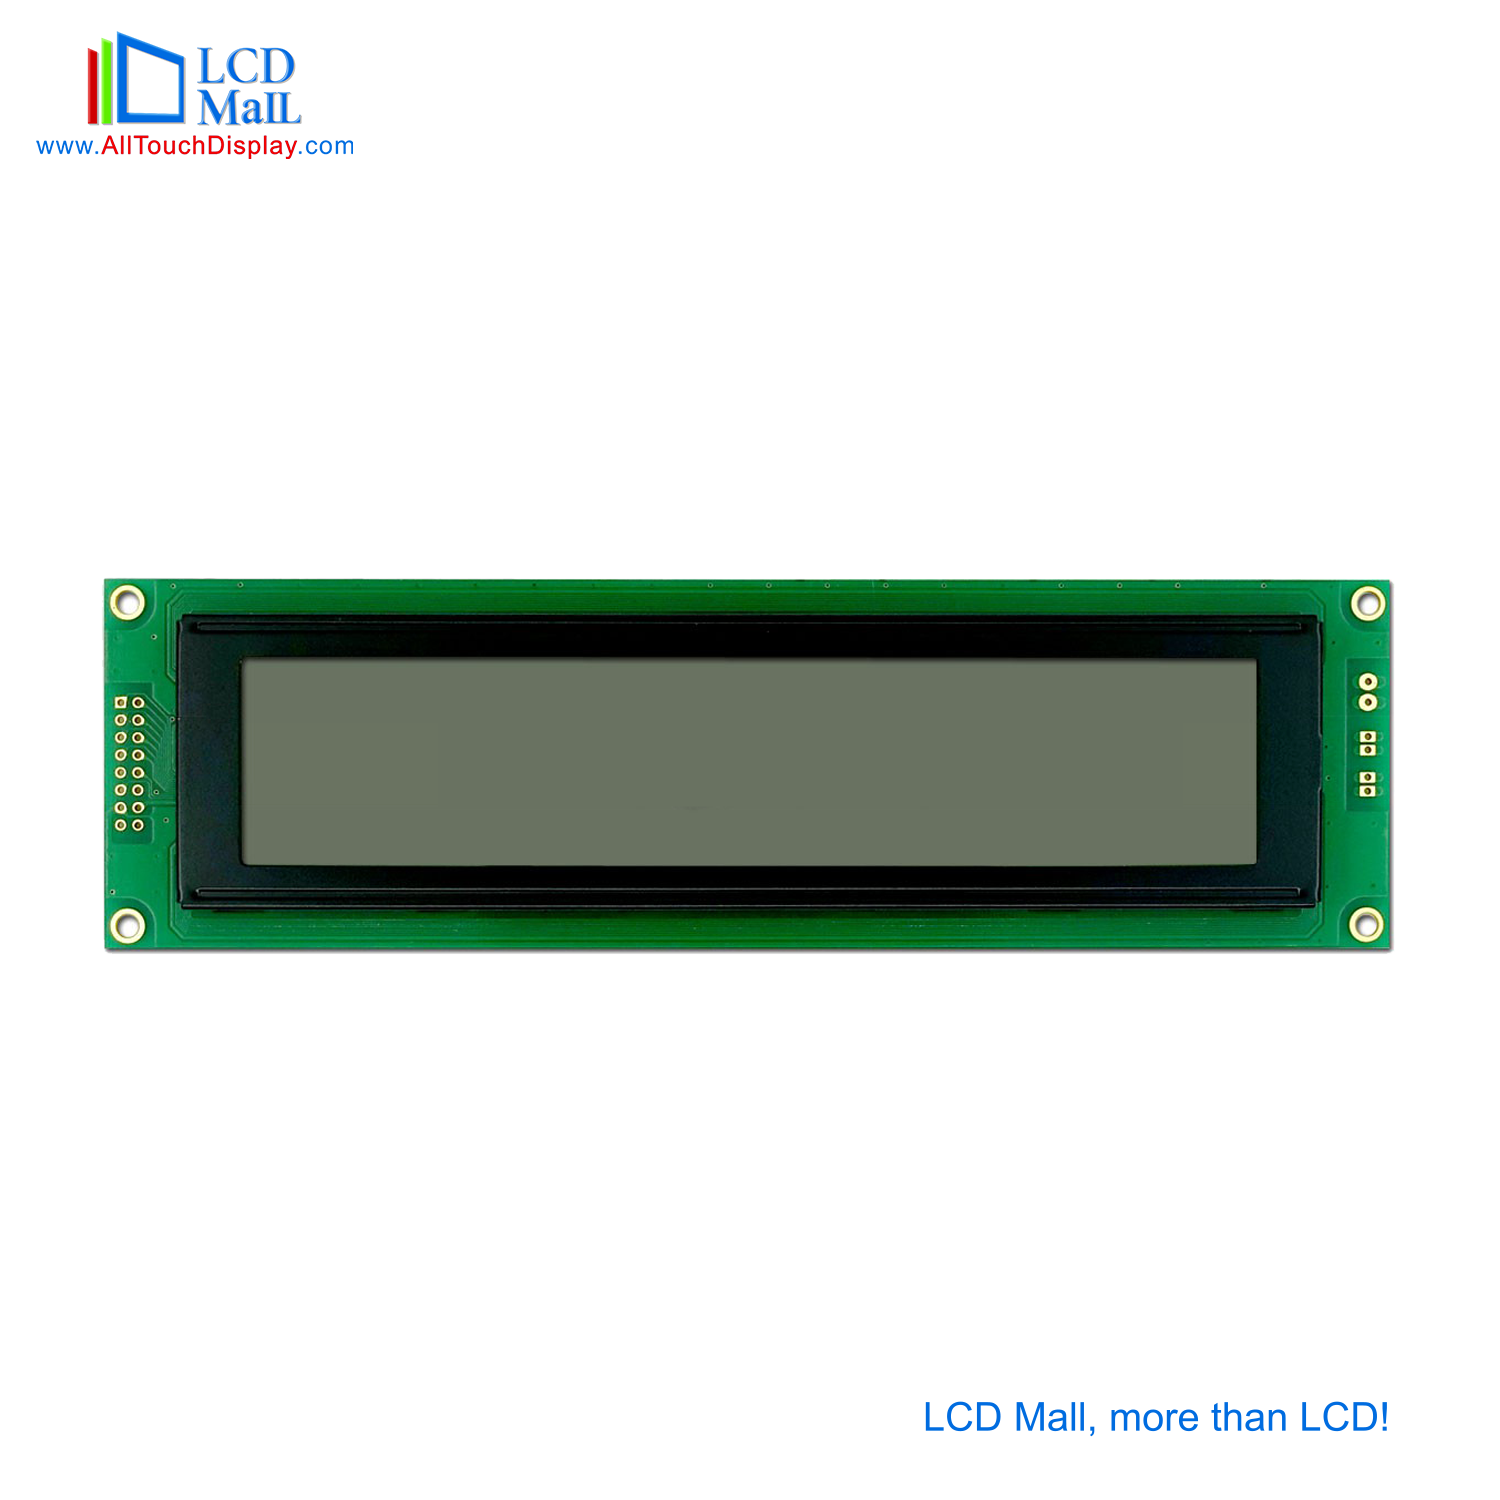 Small Monochrome LCD Display 16x2